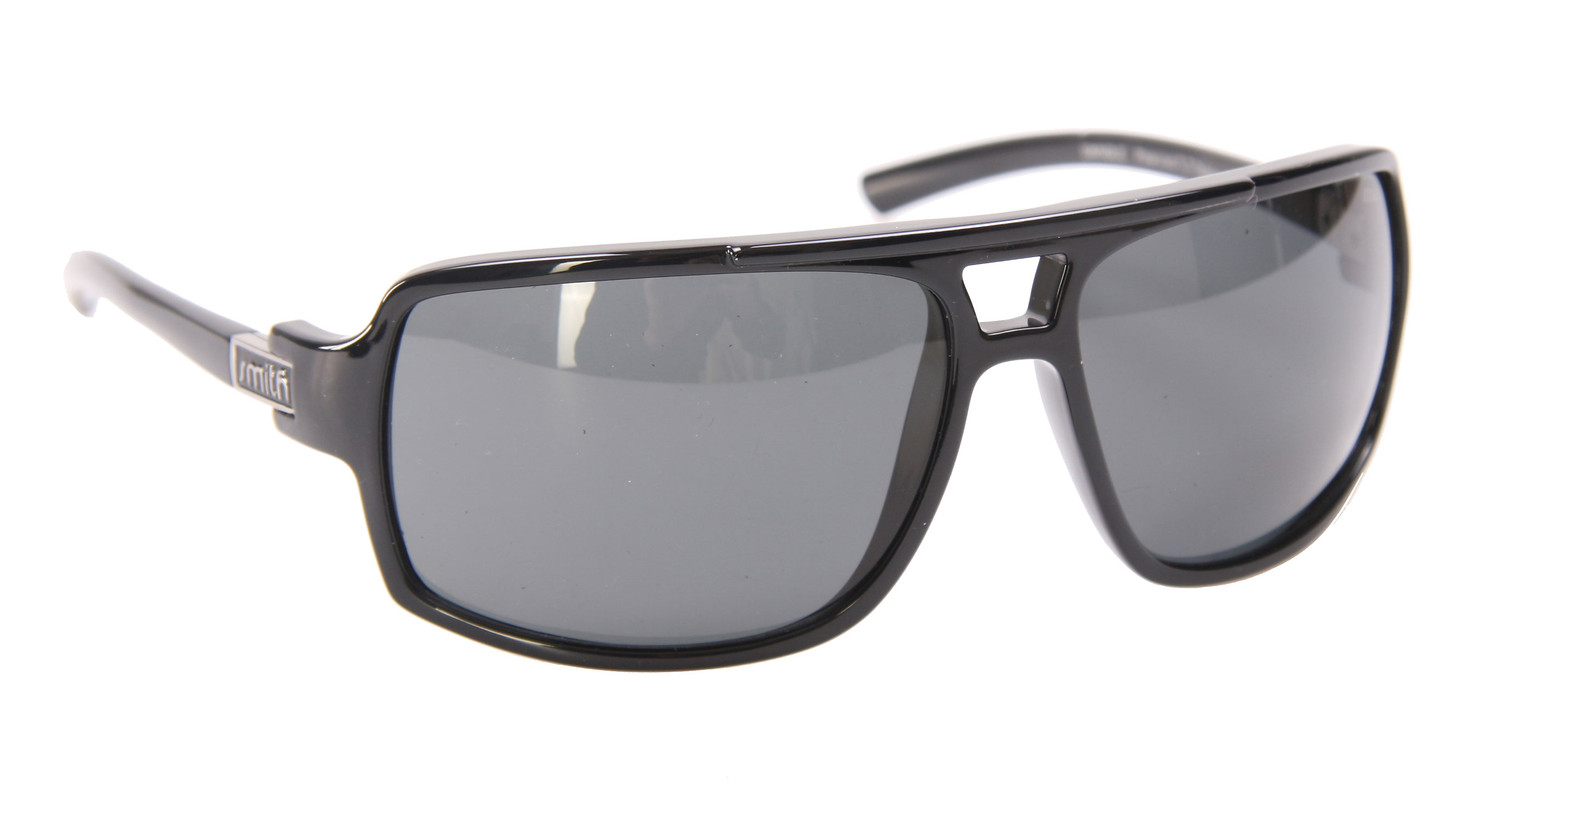 Smith Swindle Sunglasses Black Polarized Grey  smith-swindle-sngls-blkpolargry-09.jpg